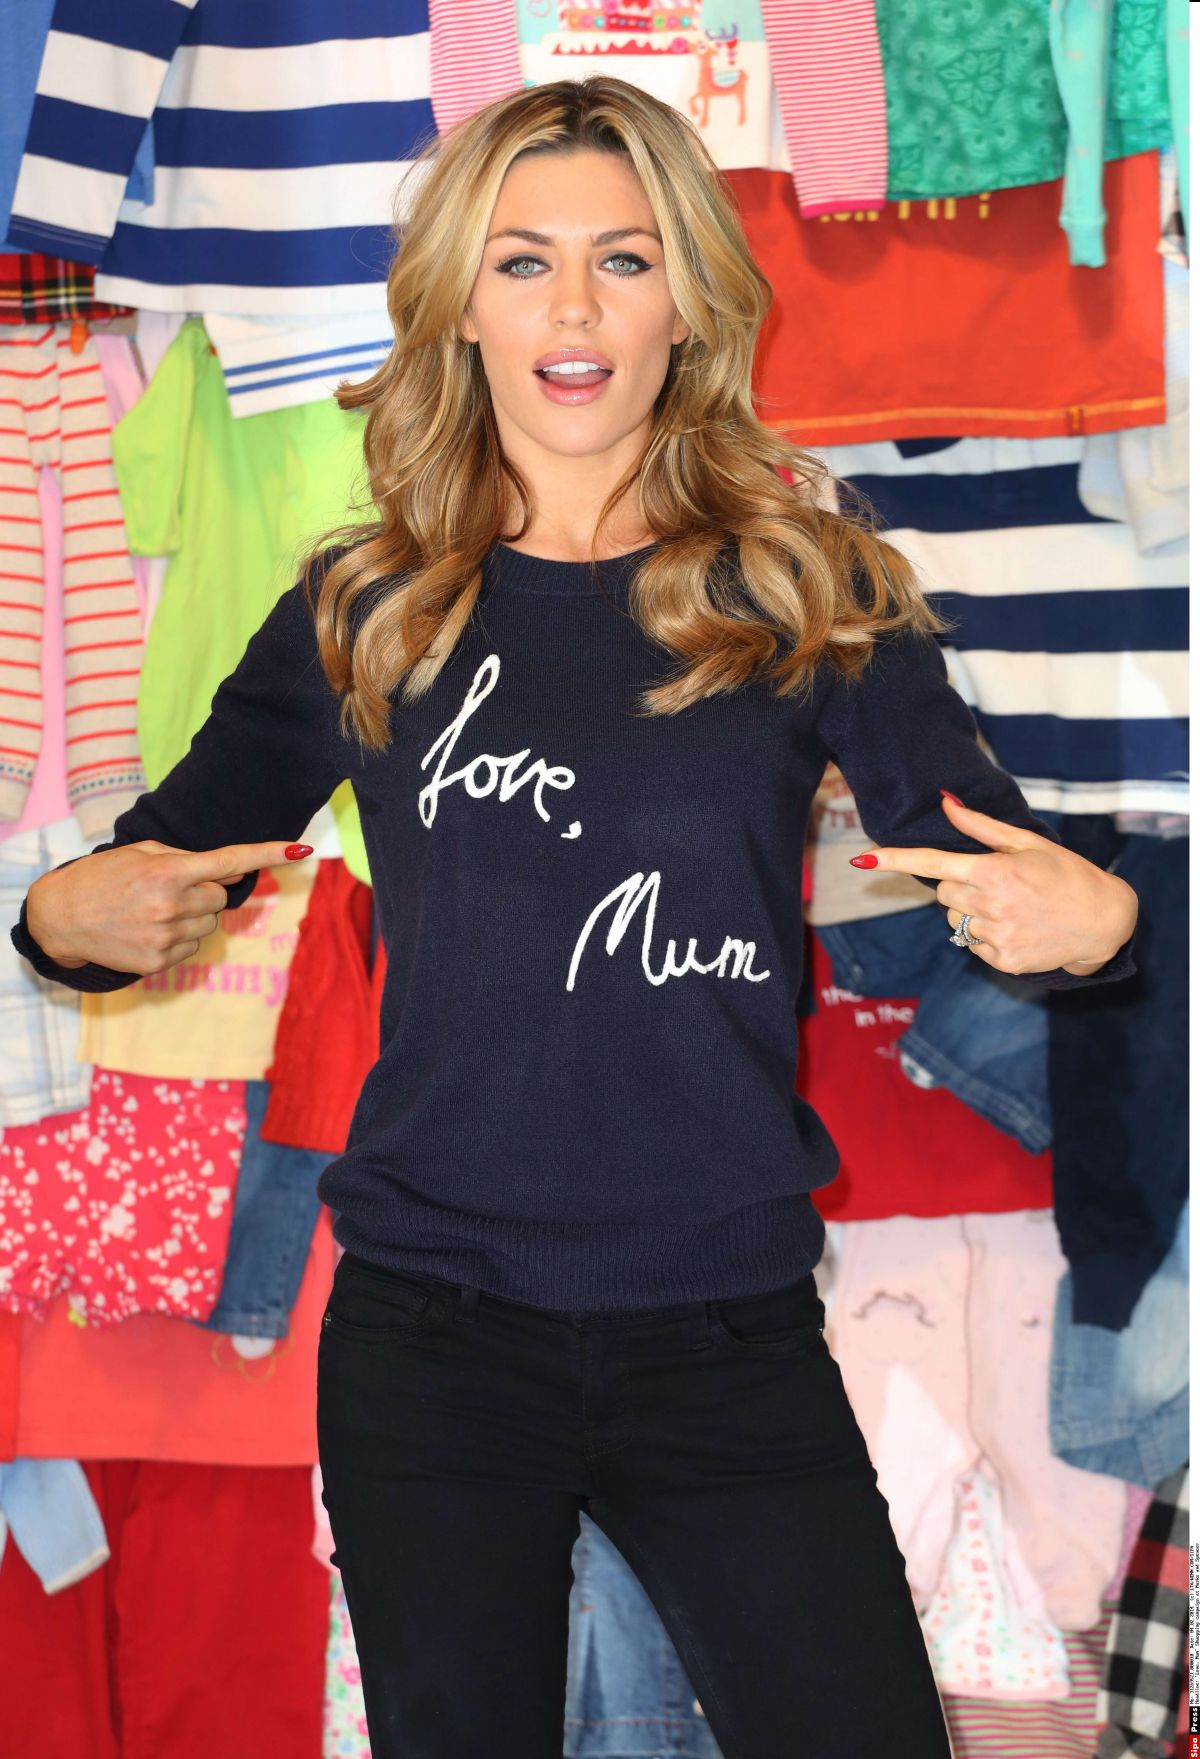 ABIGAIL ABBEY CLANCY at M&S Love, Mum Launch in London